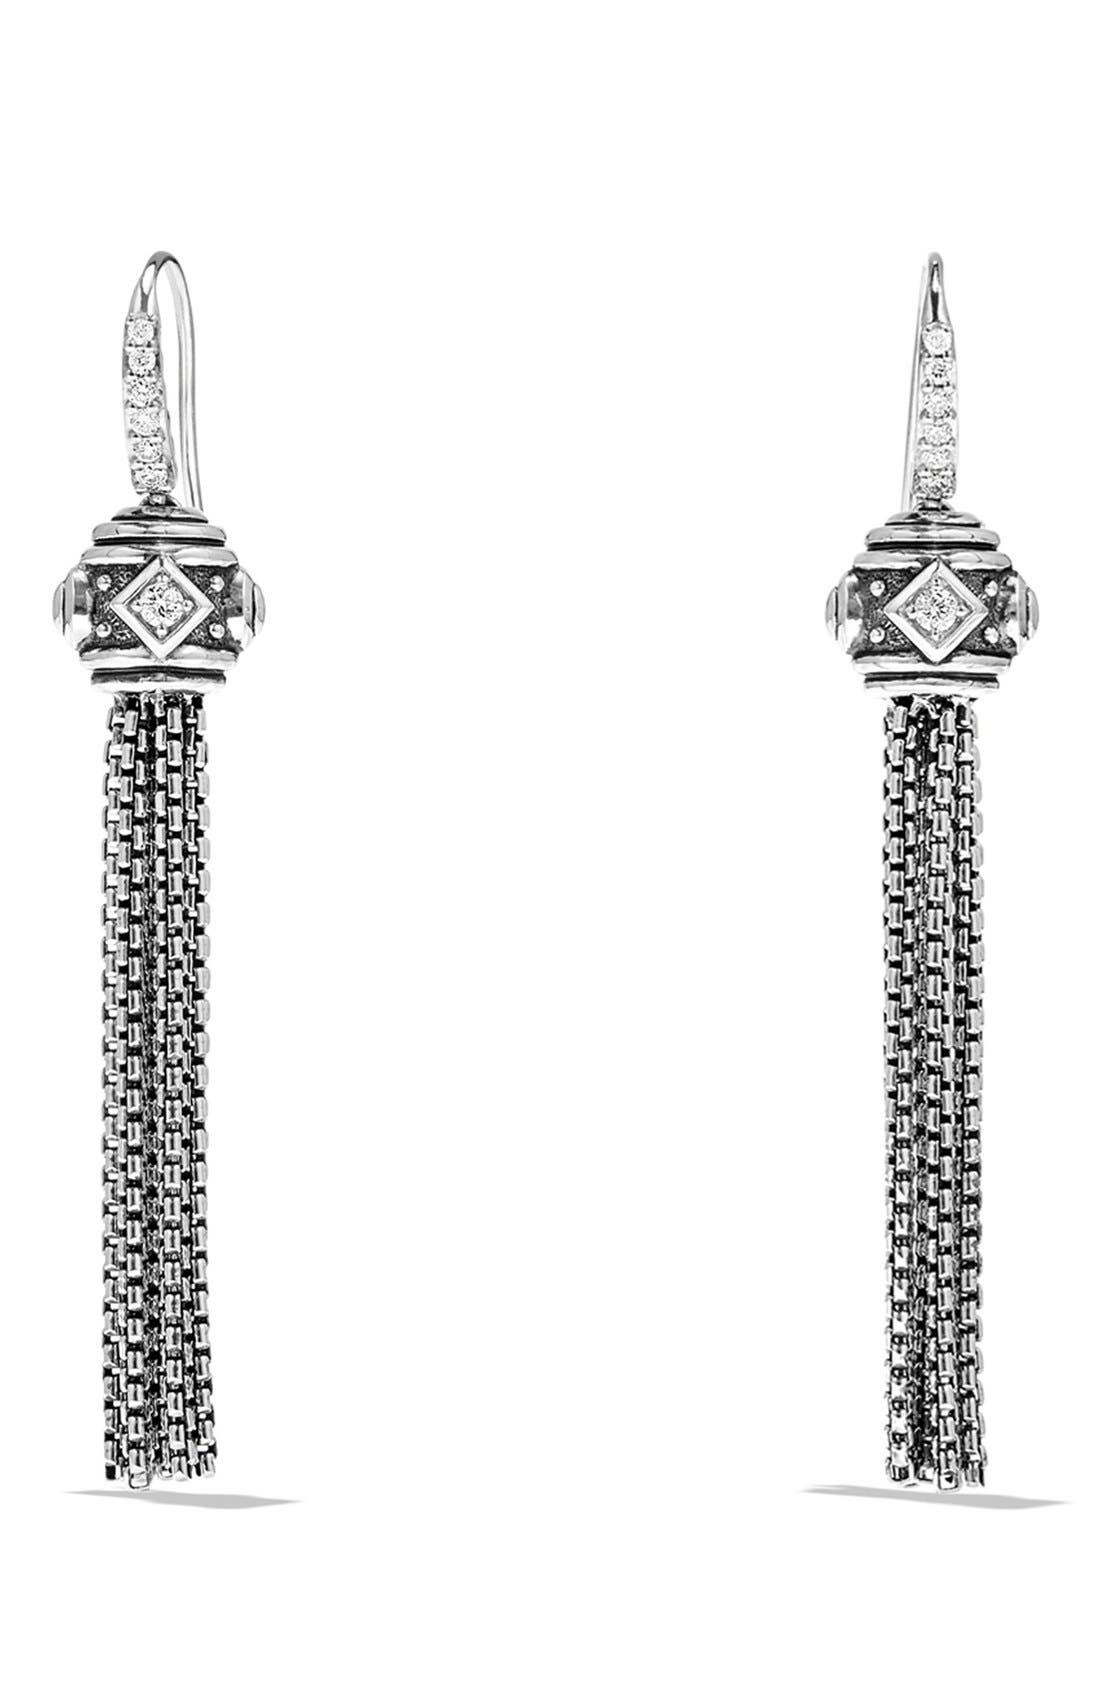 'Renaissance' Tassel Earrings with Diamonds in Silver,                             Main thumbnail 1, color,                             040